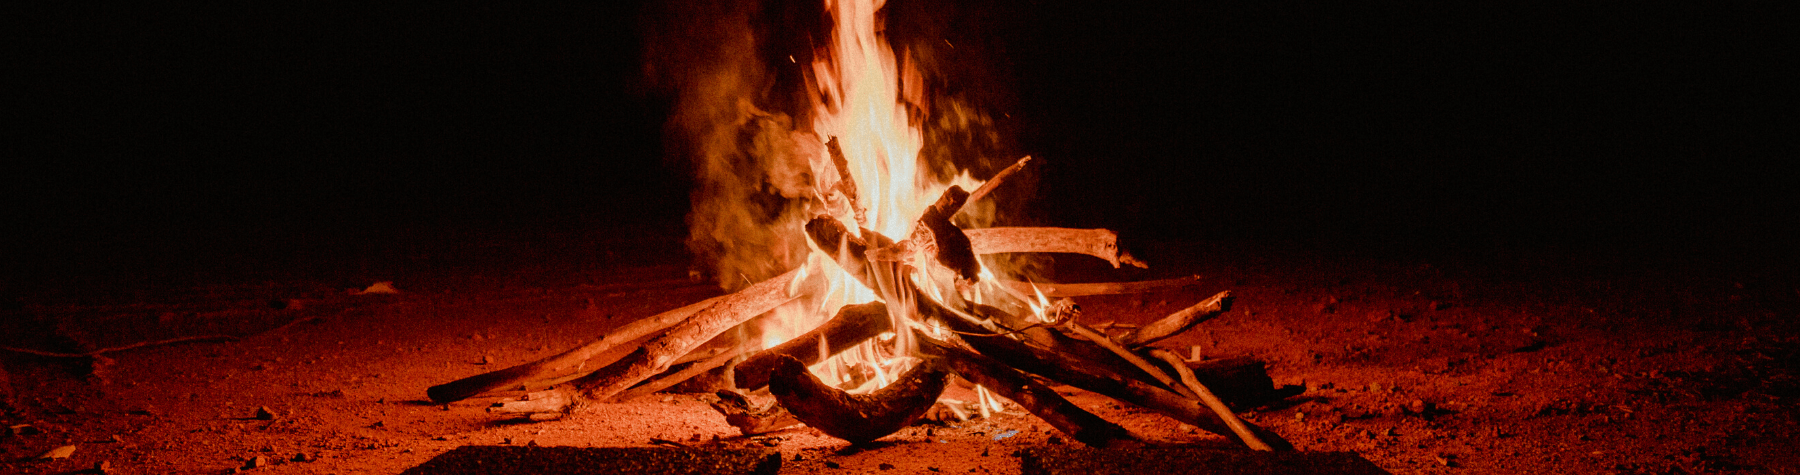 Backyard fires in residential areas